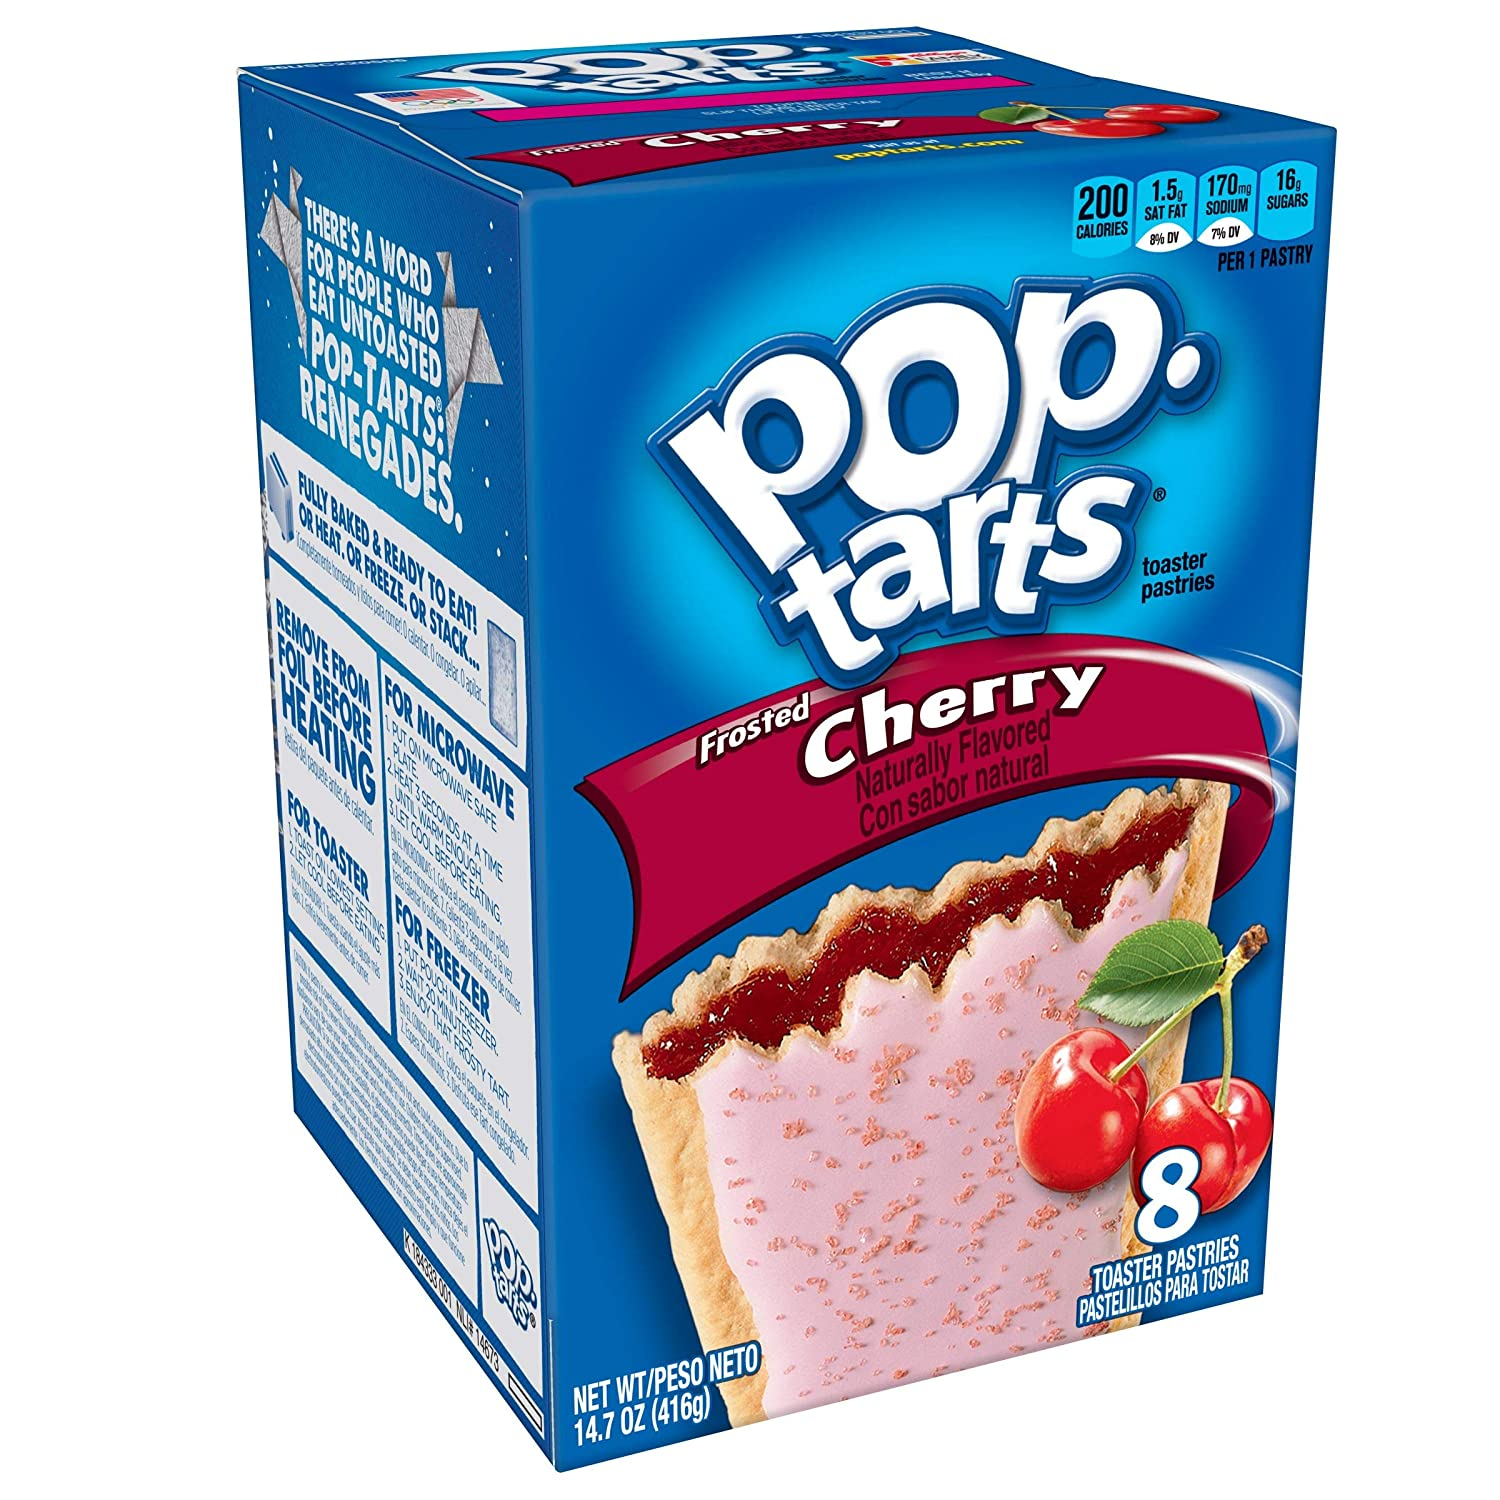 Pop-Tarts Breakfast Toaster Pastries, Frosted Cherry Flavored, 14.7 oz (8 Count)